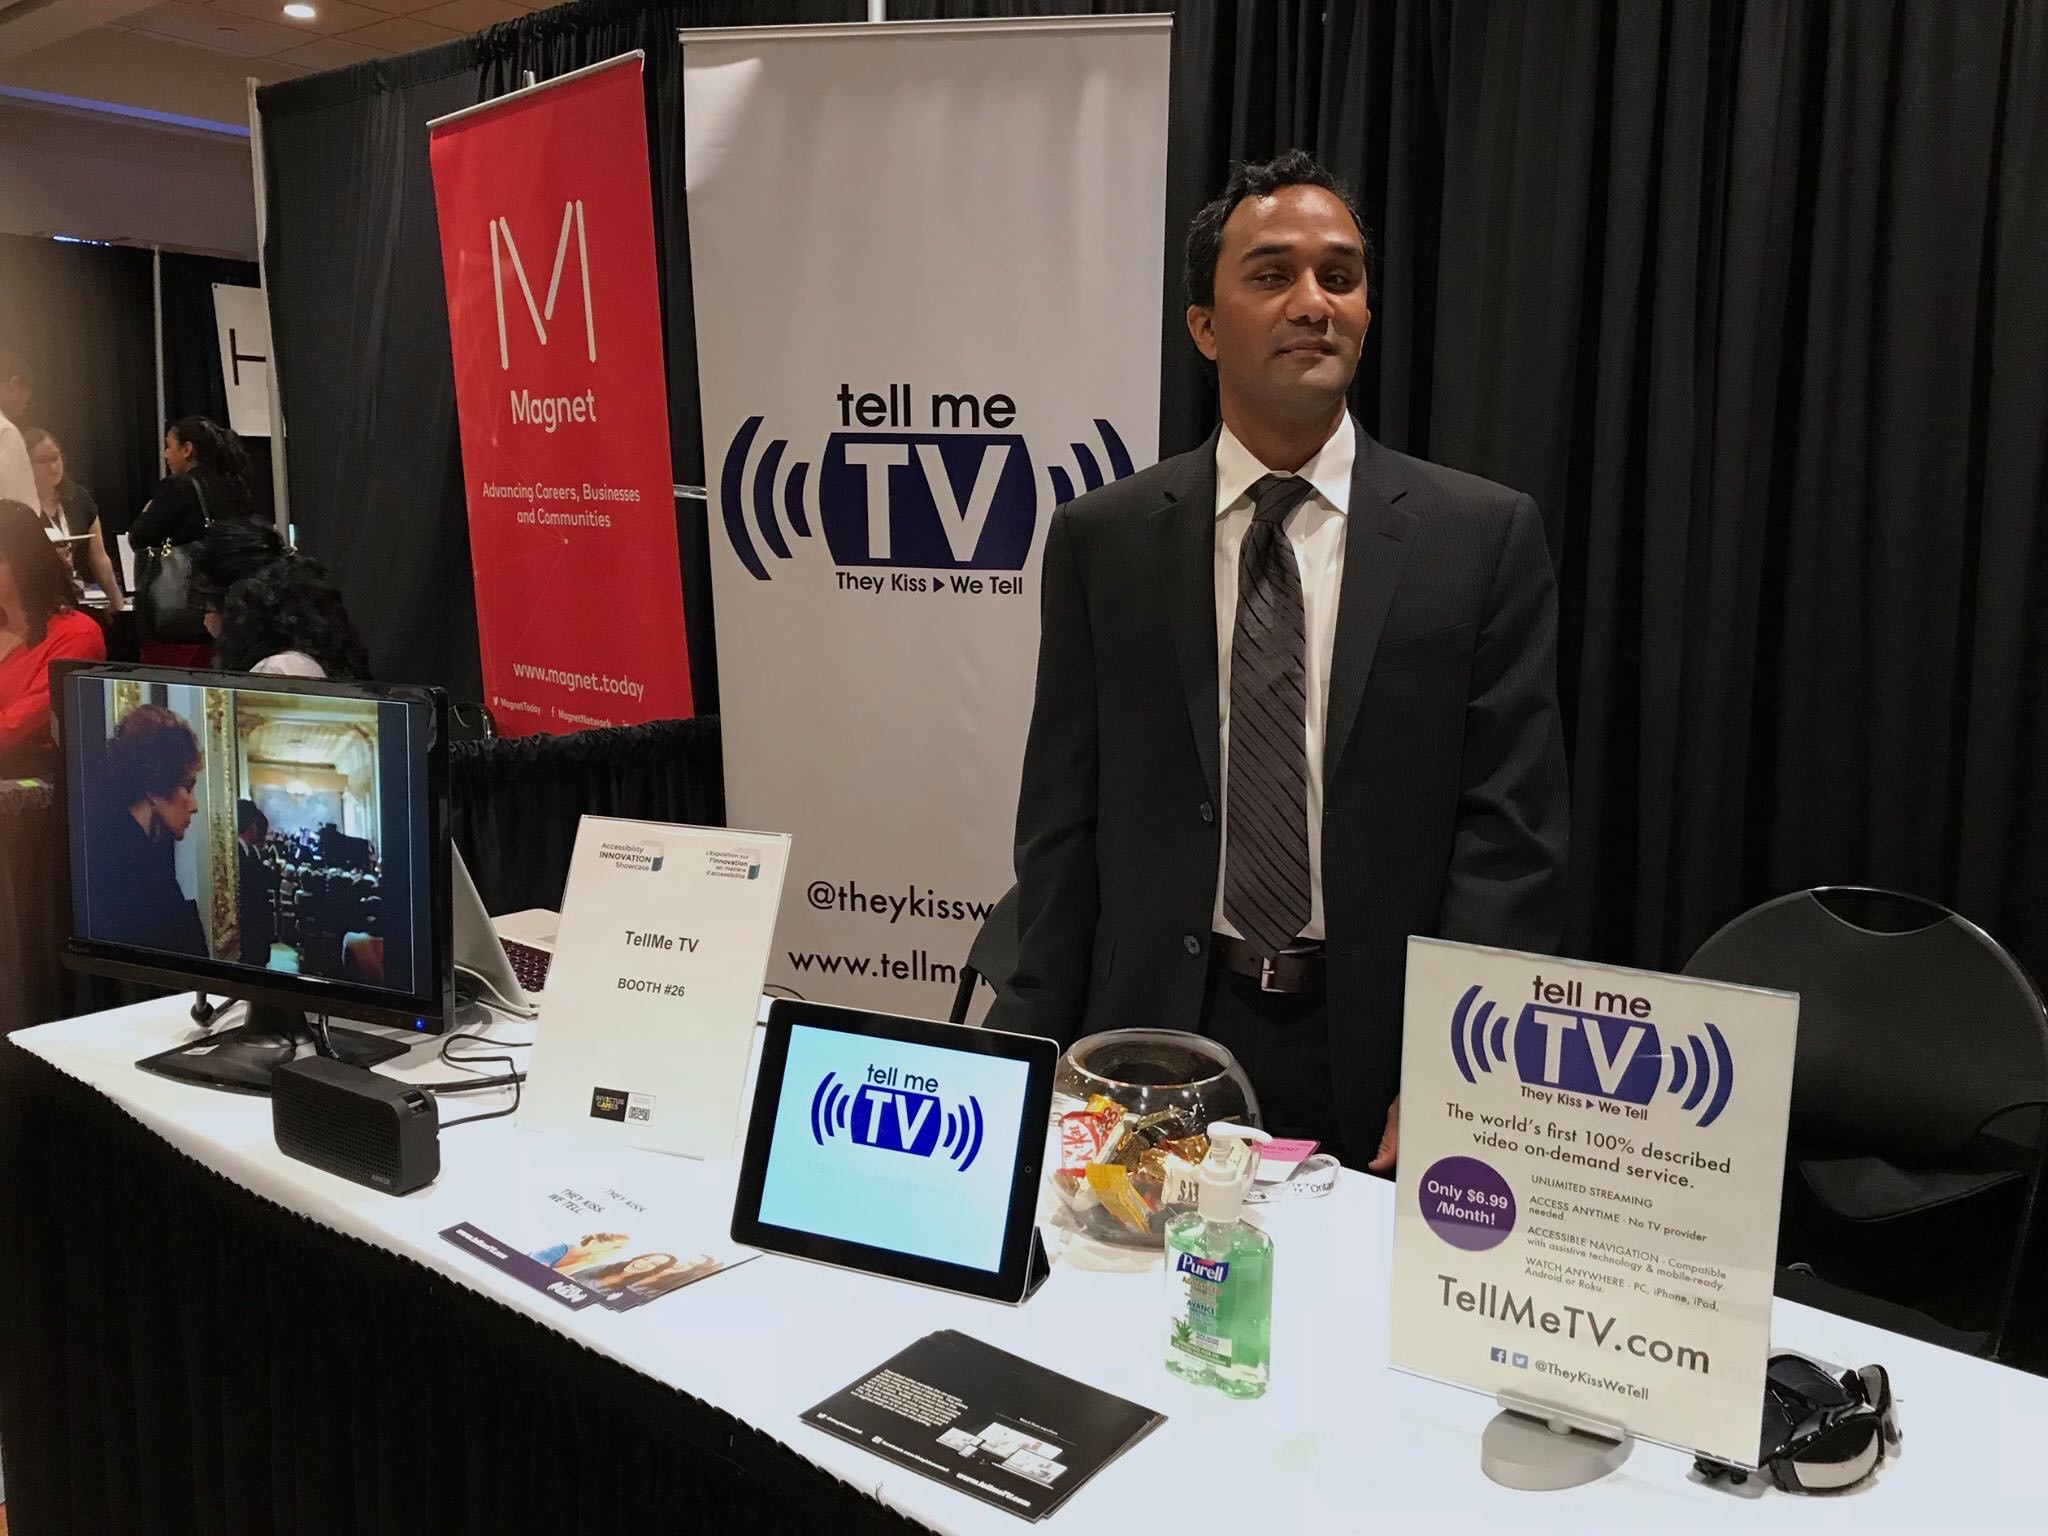 Kevin Shaw stands at a table where he has a display set up for his company, TellMeTV.